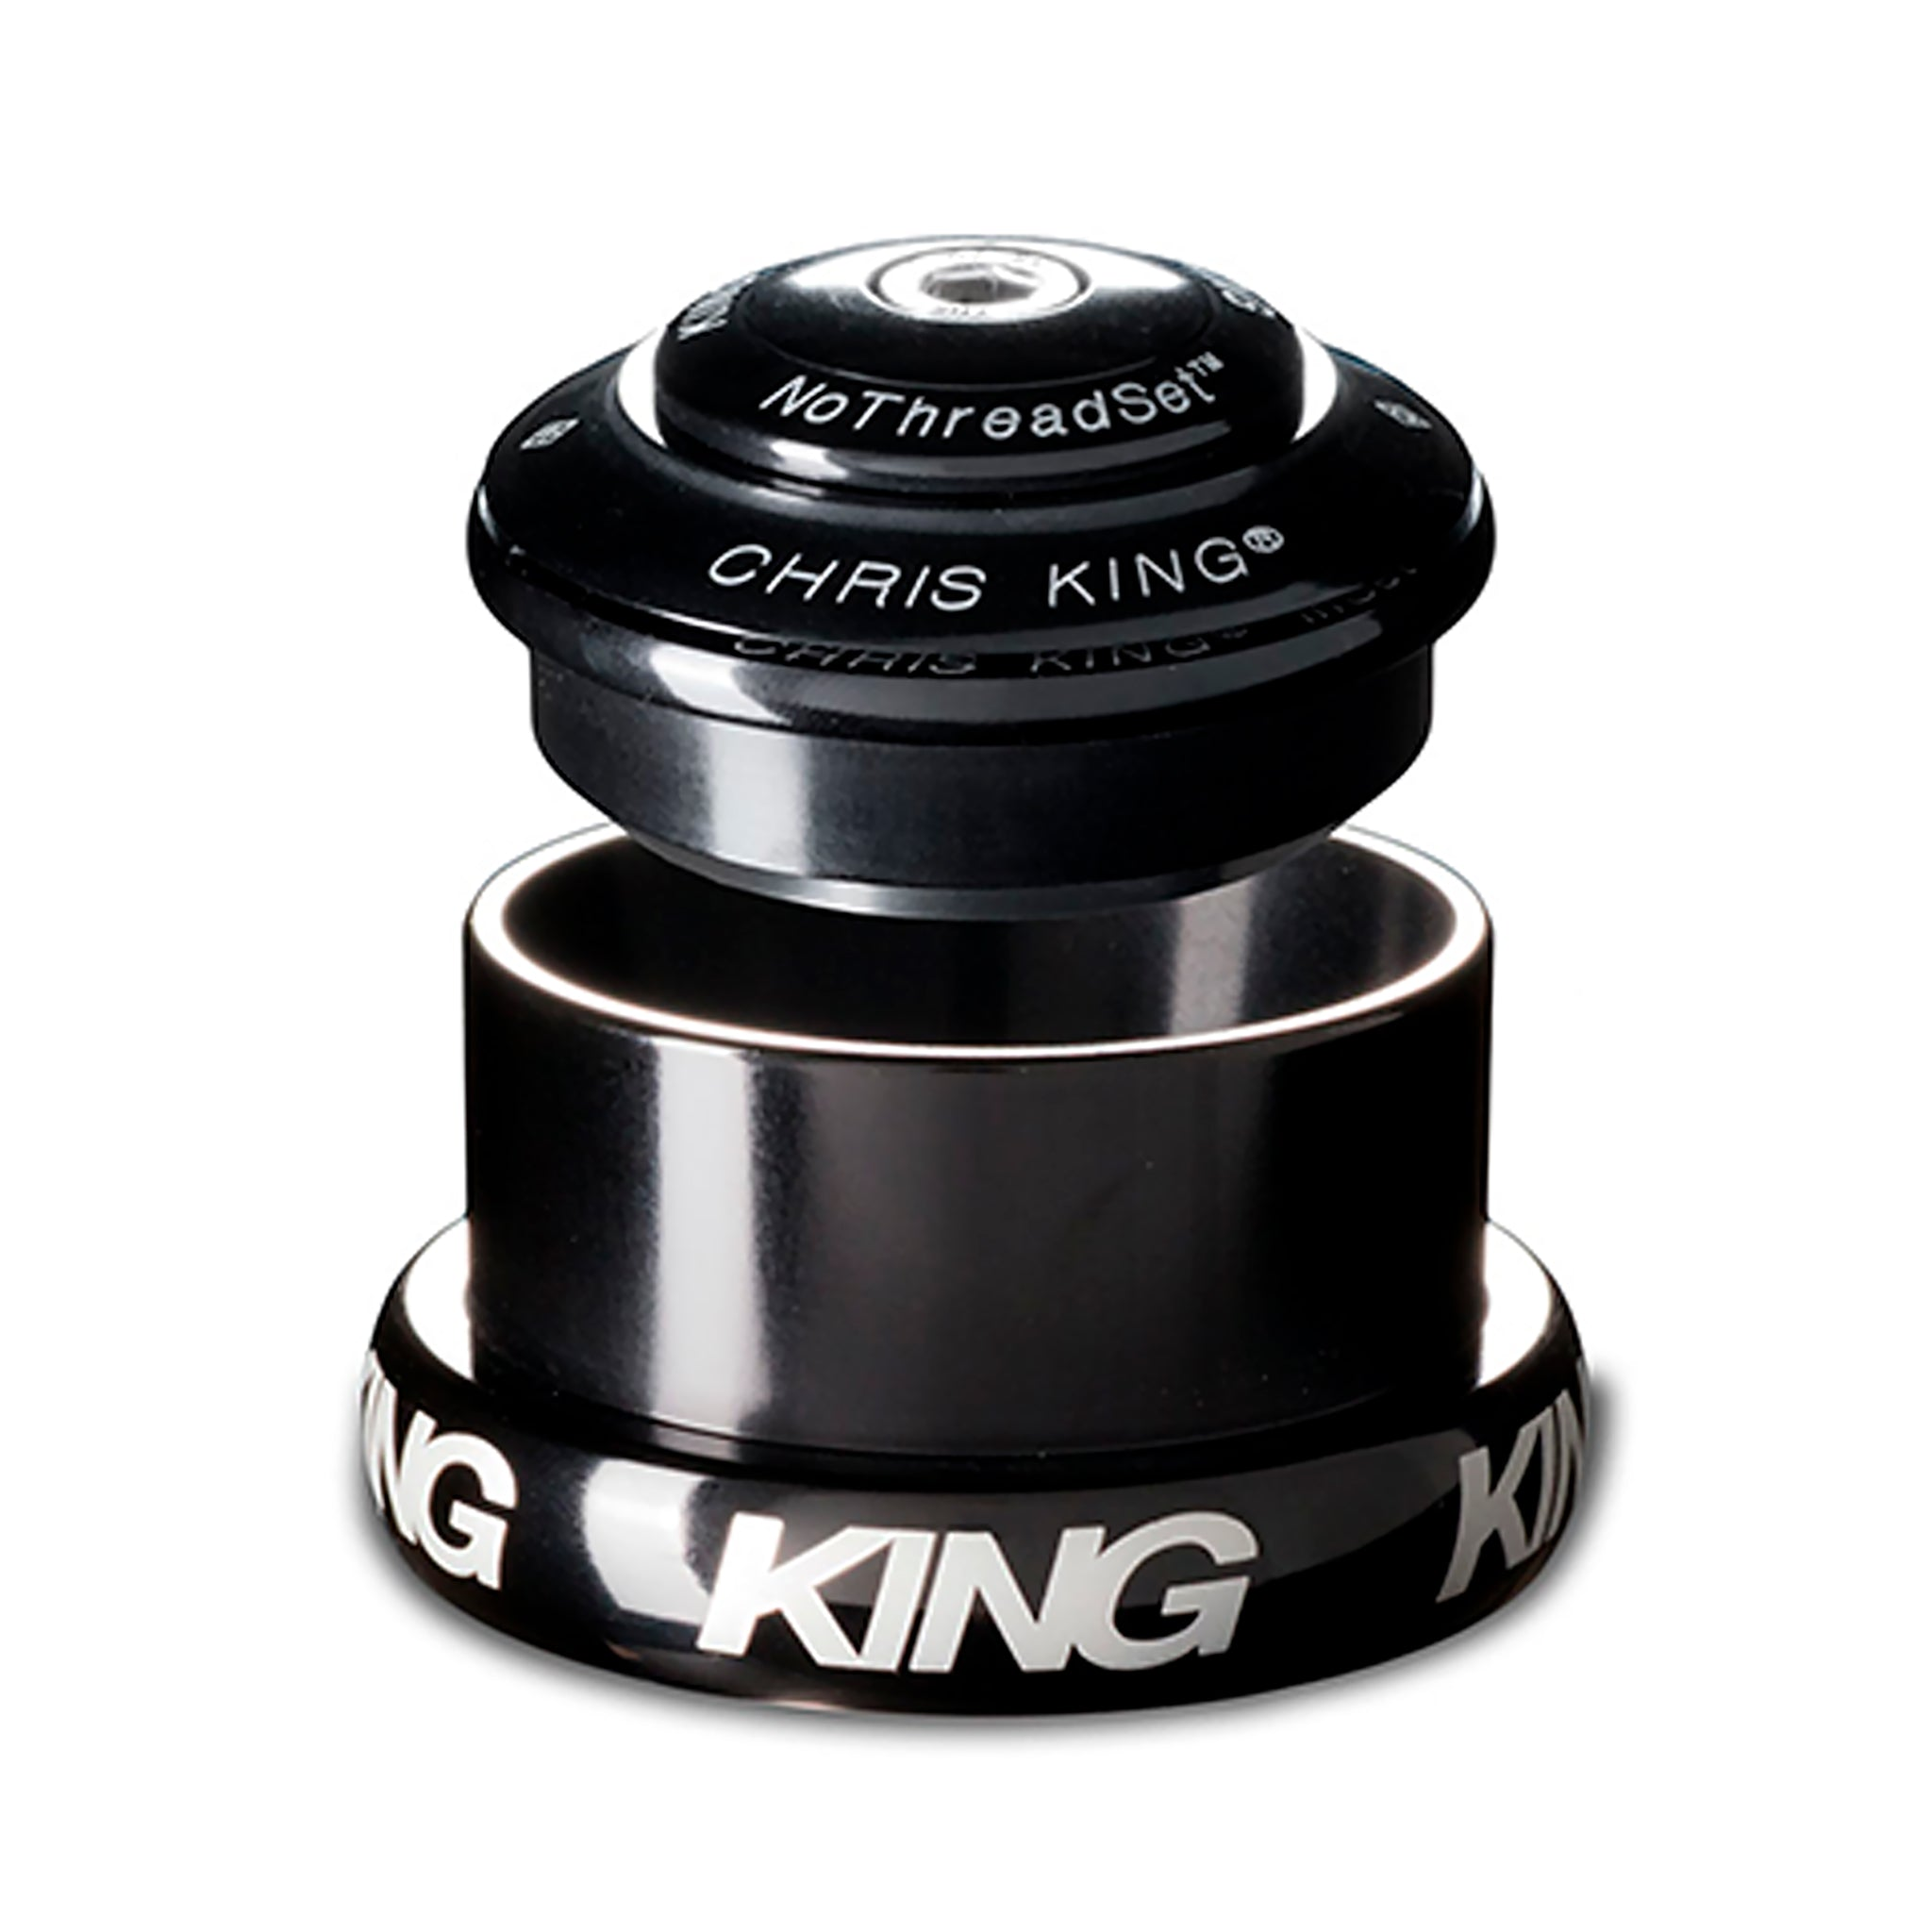 Chris King Inset 3 Headset Green Zs44 Ec49 Tapered